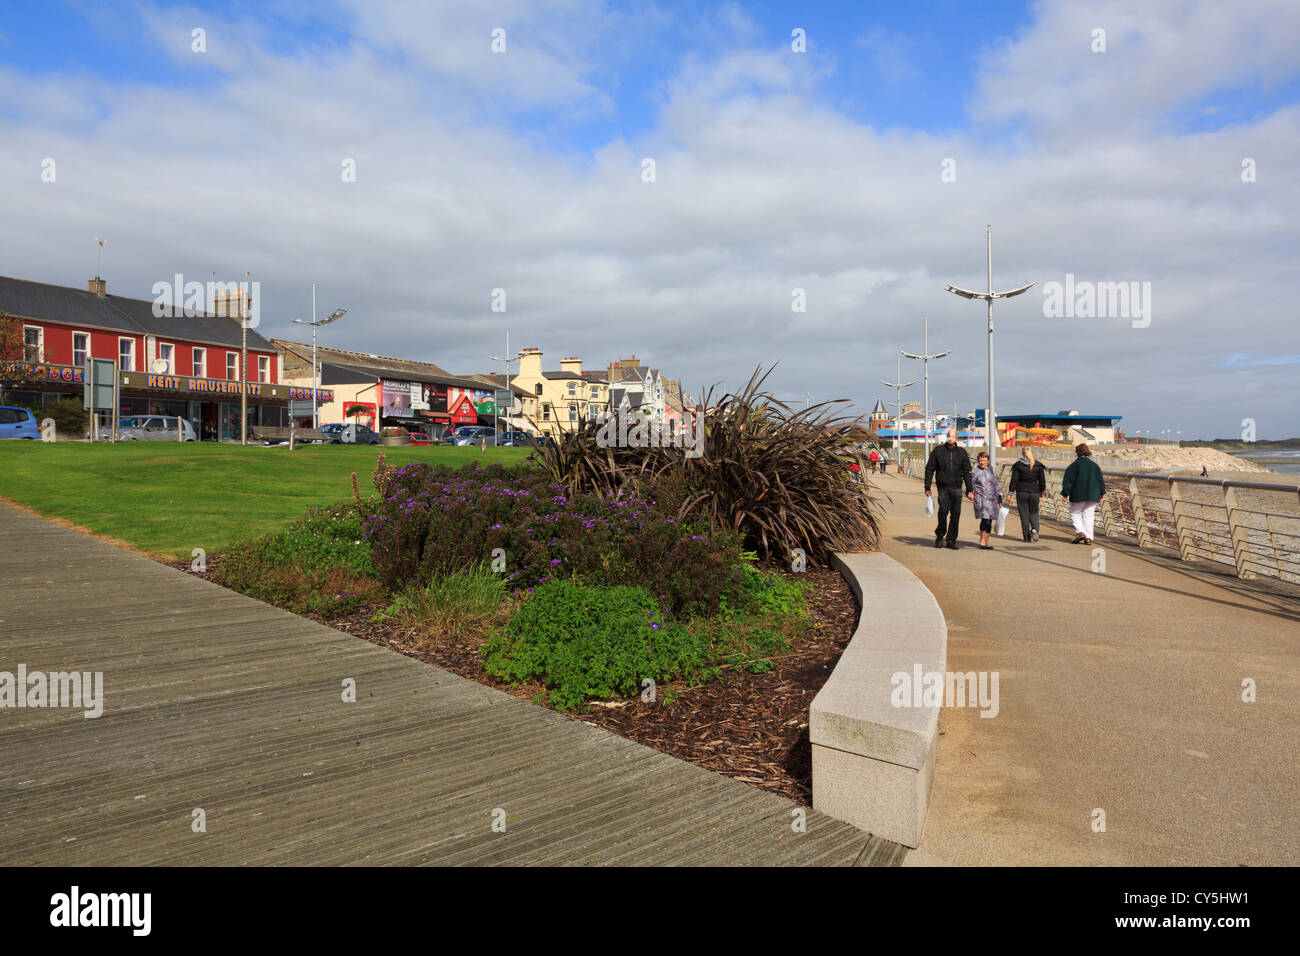 People walking on the seafront promenade of seaside resort on the east coast at Newcastle, Co Down, Northern Ireland, - Stock Image